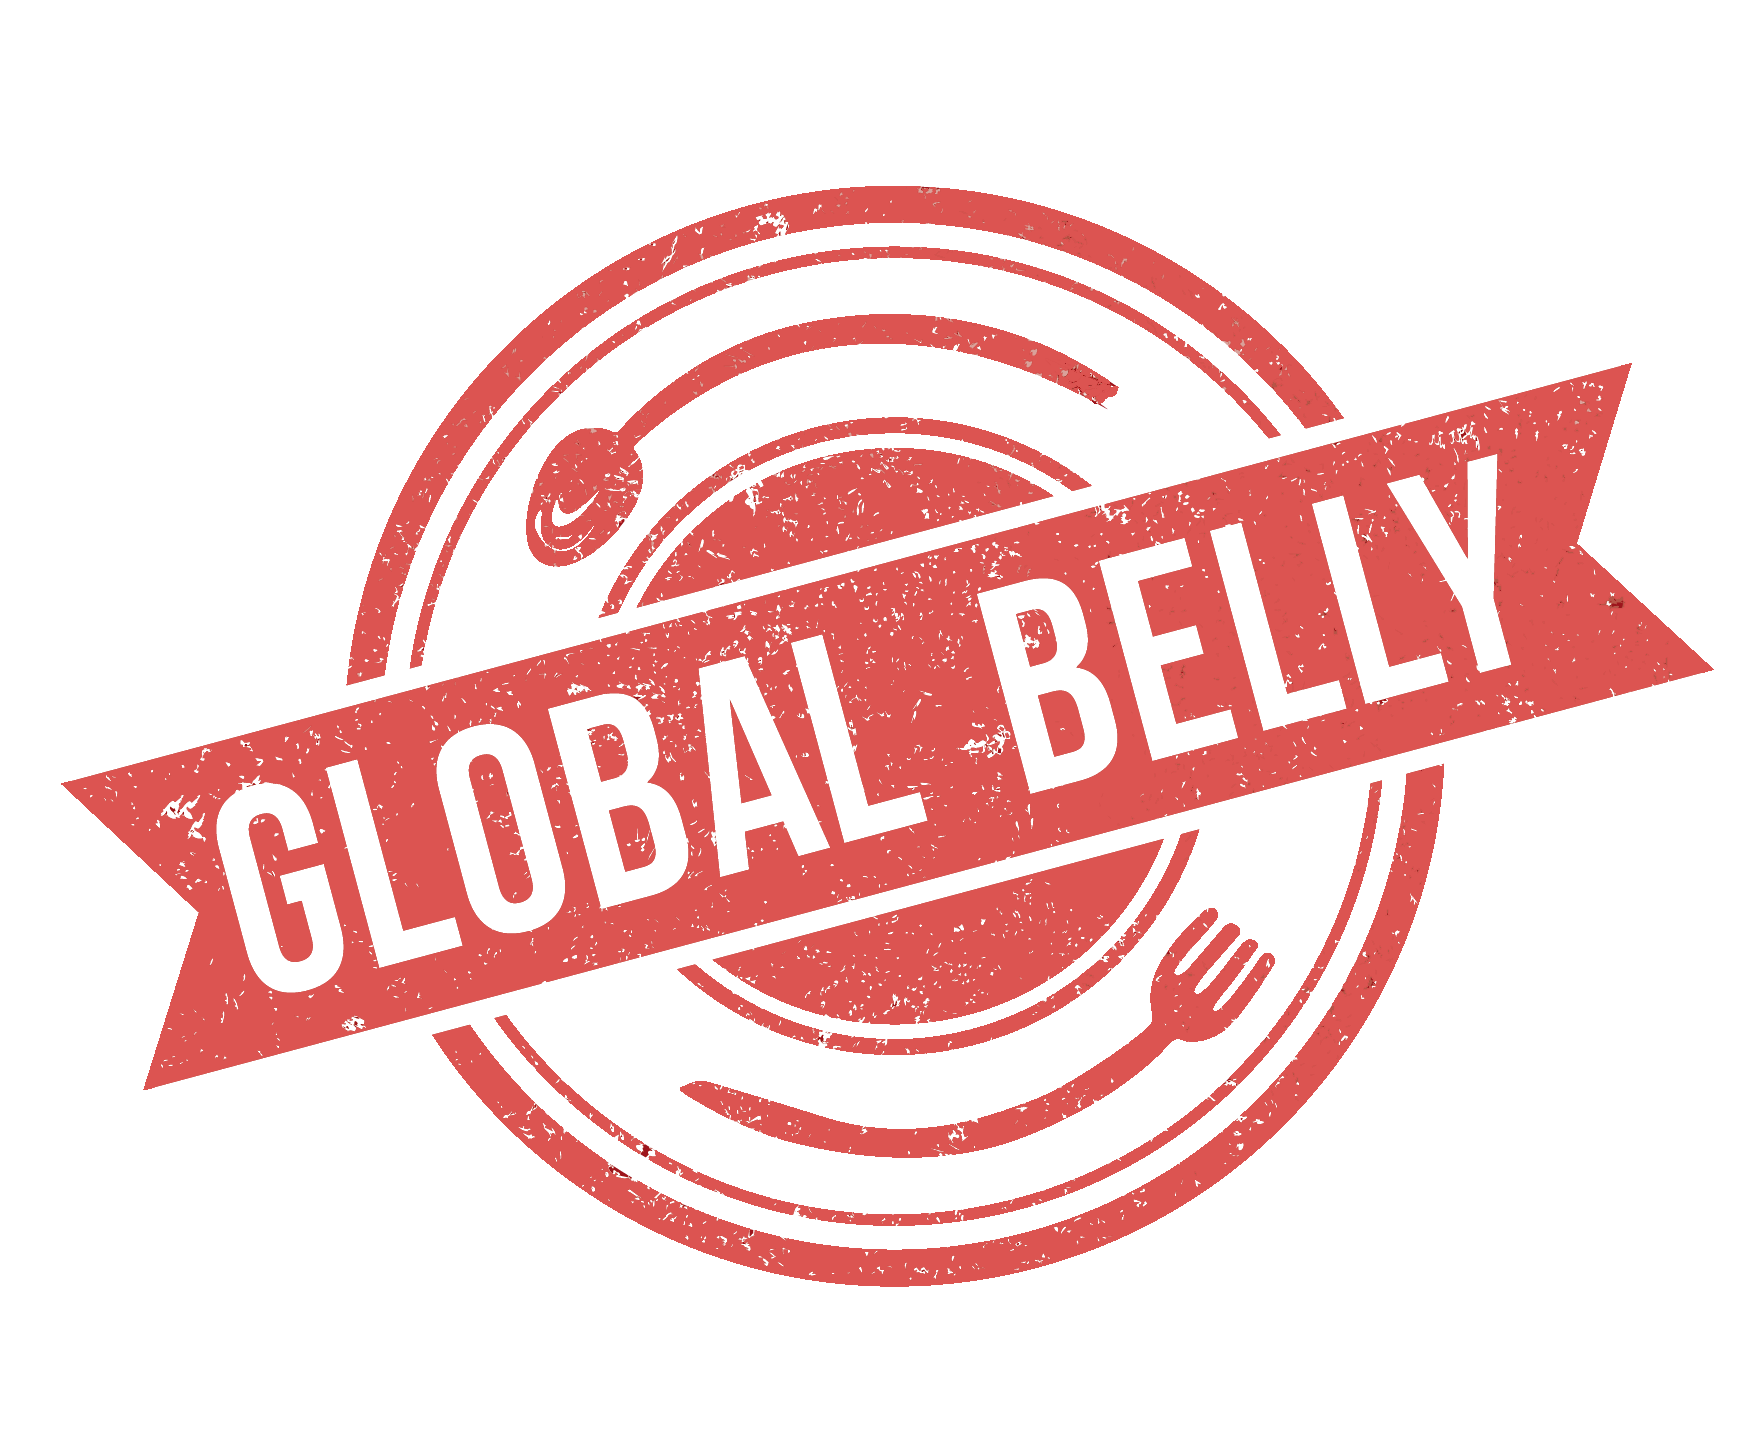 Global Belly Logo